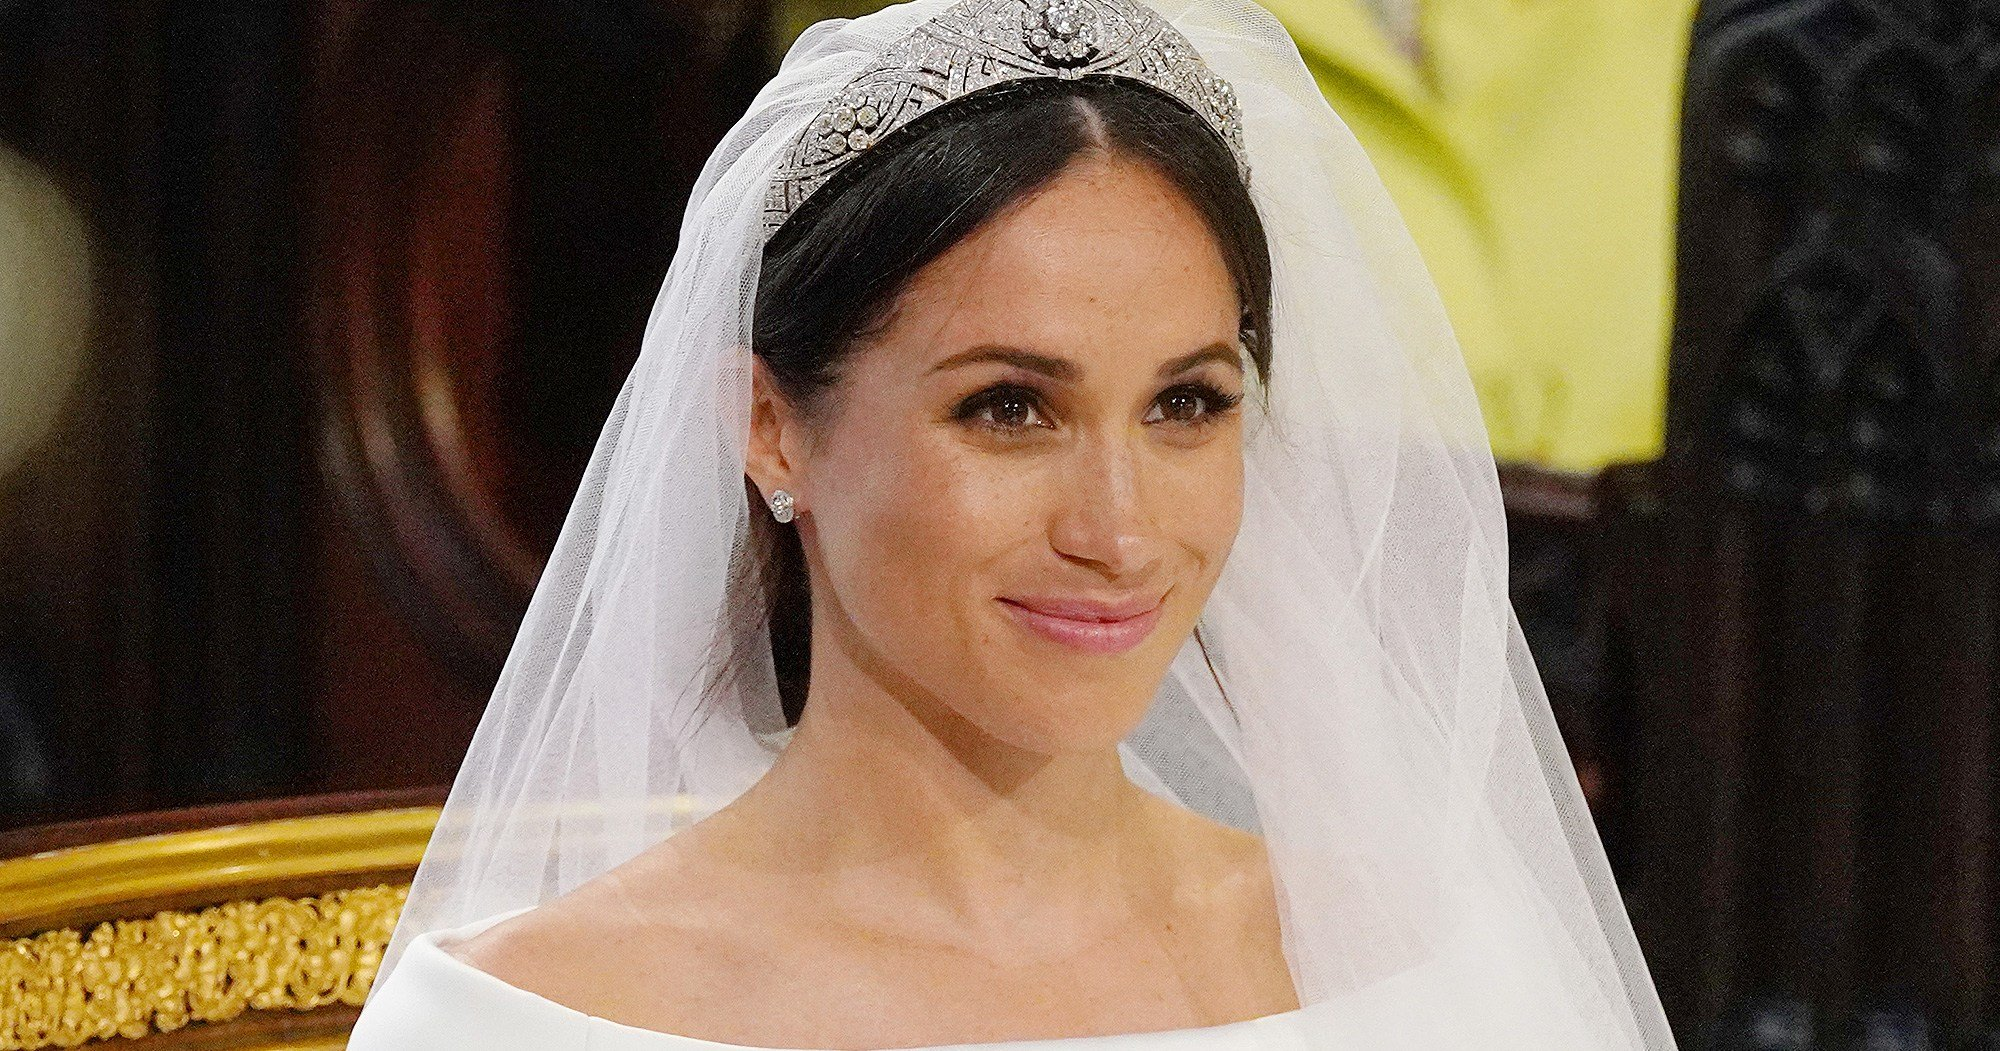 Meghan Markle's Royal Wedding Tiara: Details